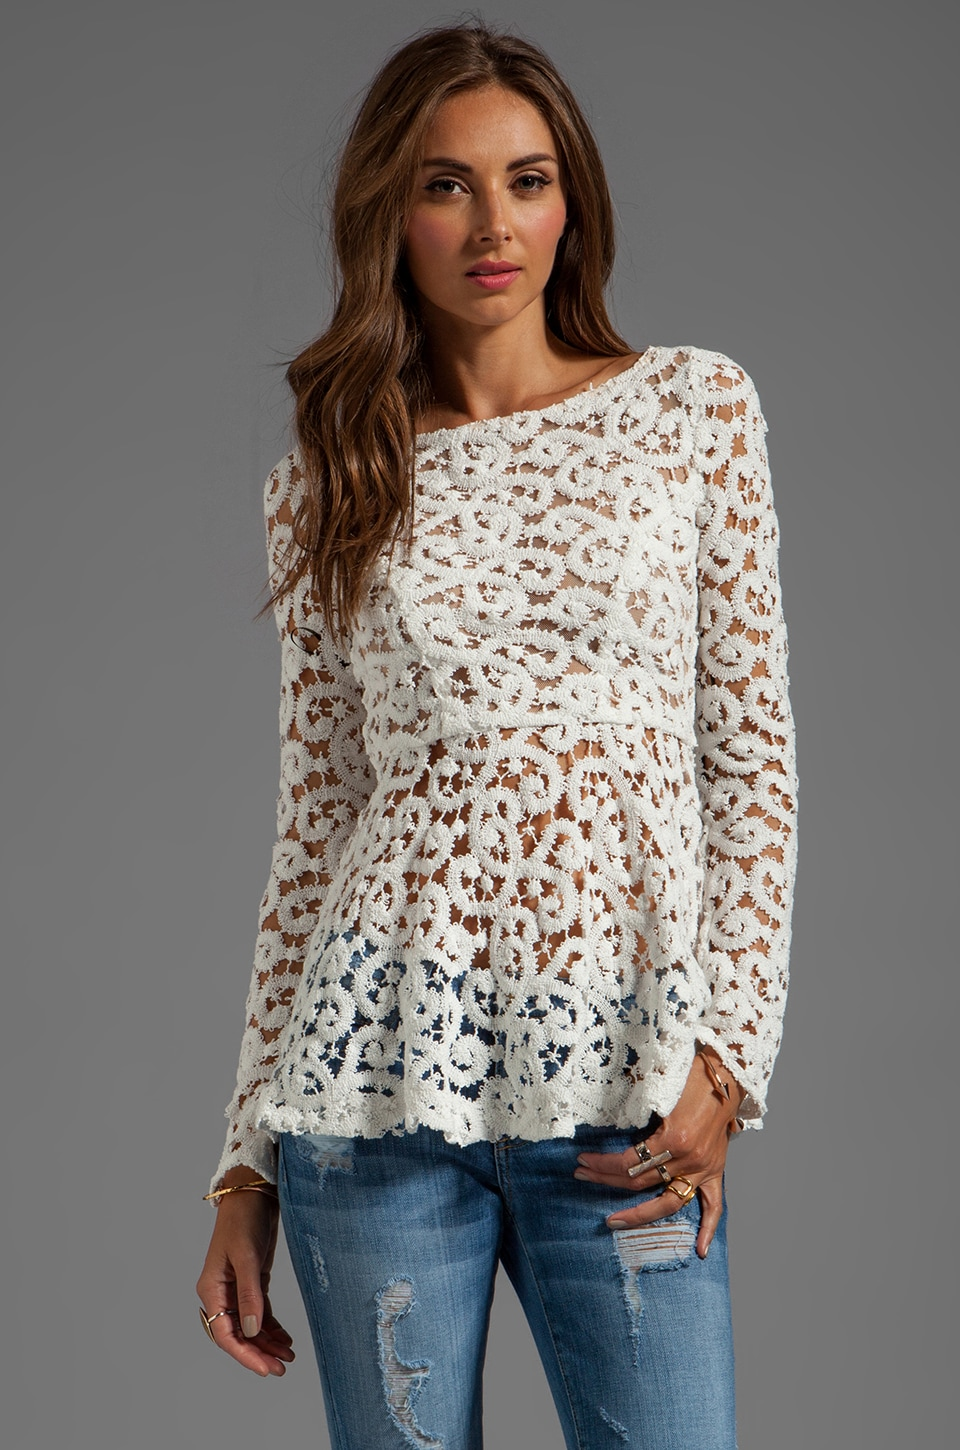 Catherine Malandrino BLACK LABEL Quantum Lace Top in Ivory